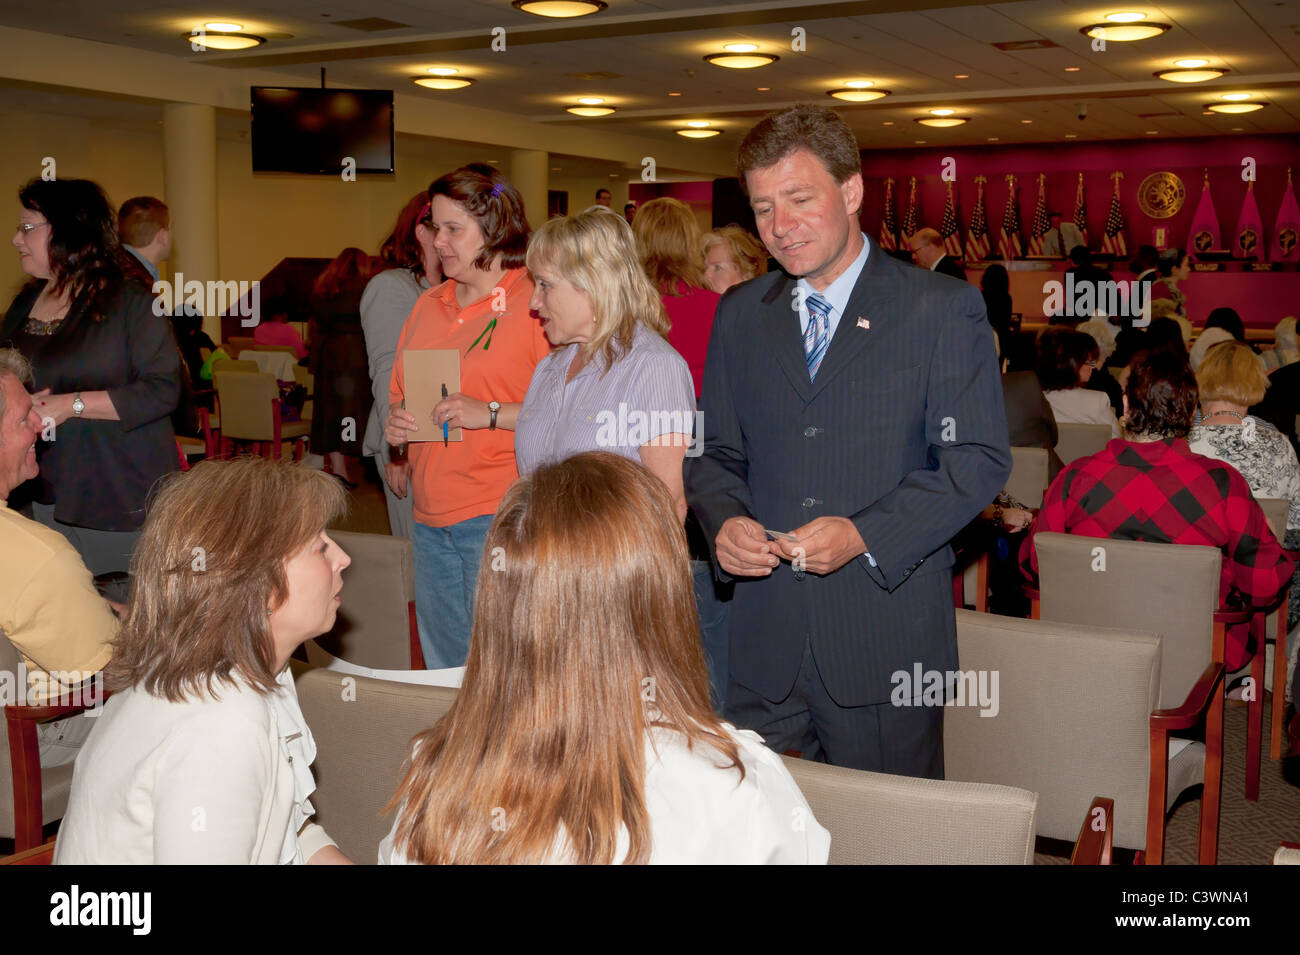 Legislator Dave Denenberg (LD 19), standing center, with supporters at Nassau Redistricting hearing, May 9, 2011, - Stock Image